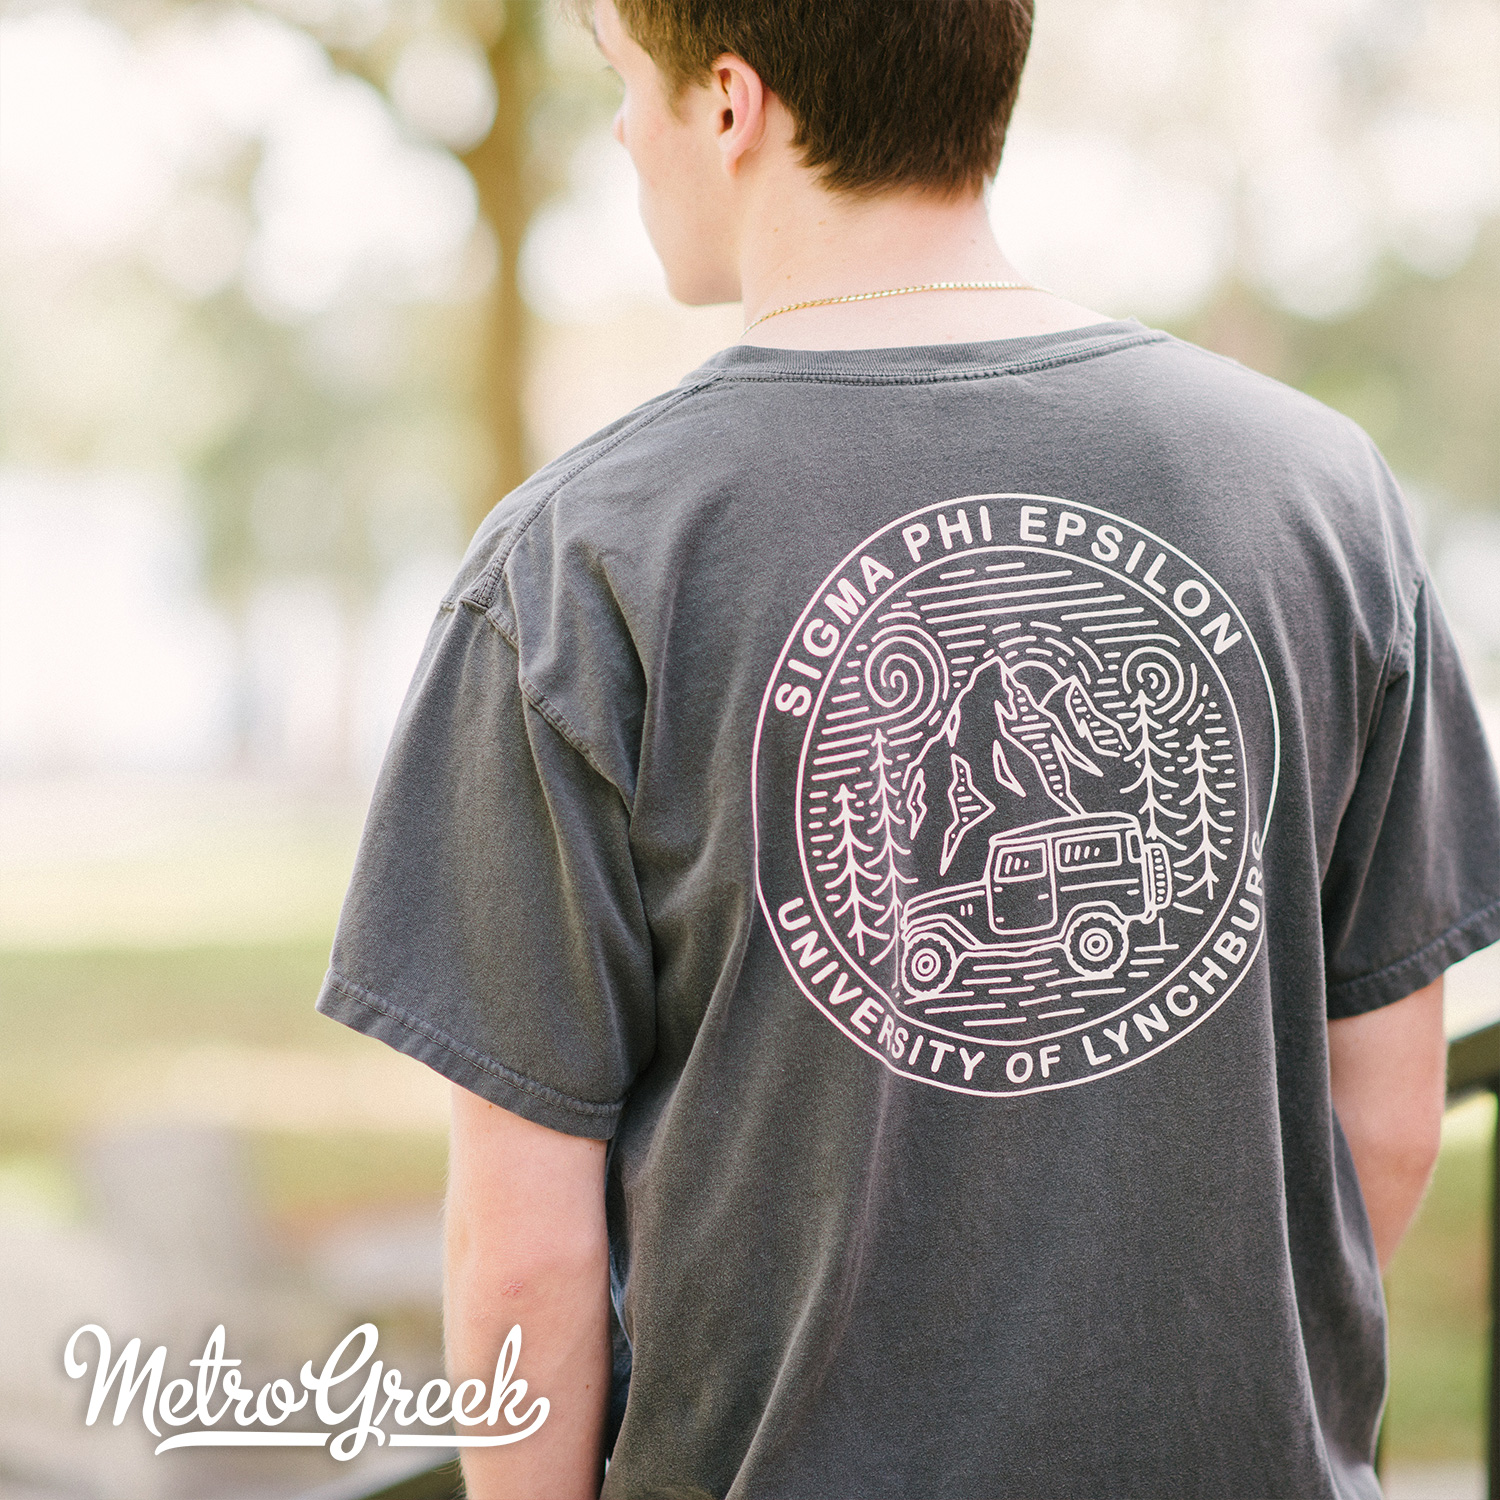 Sig Ep Brotherhood Retreat T-shirt